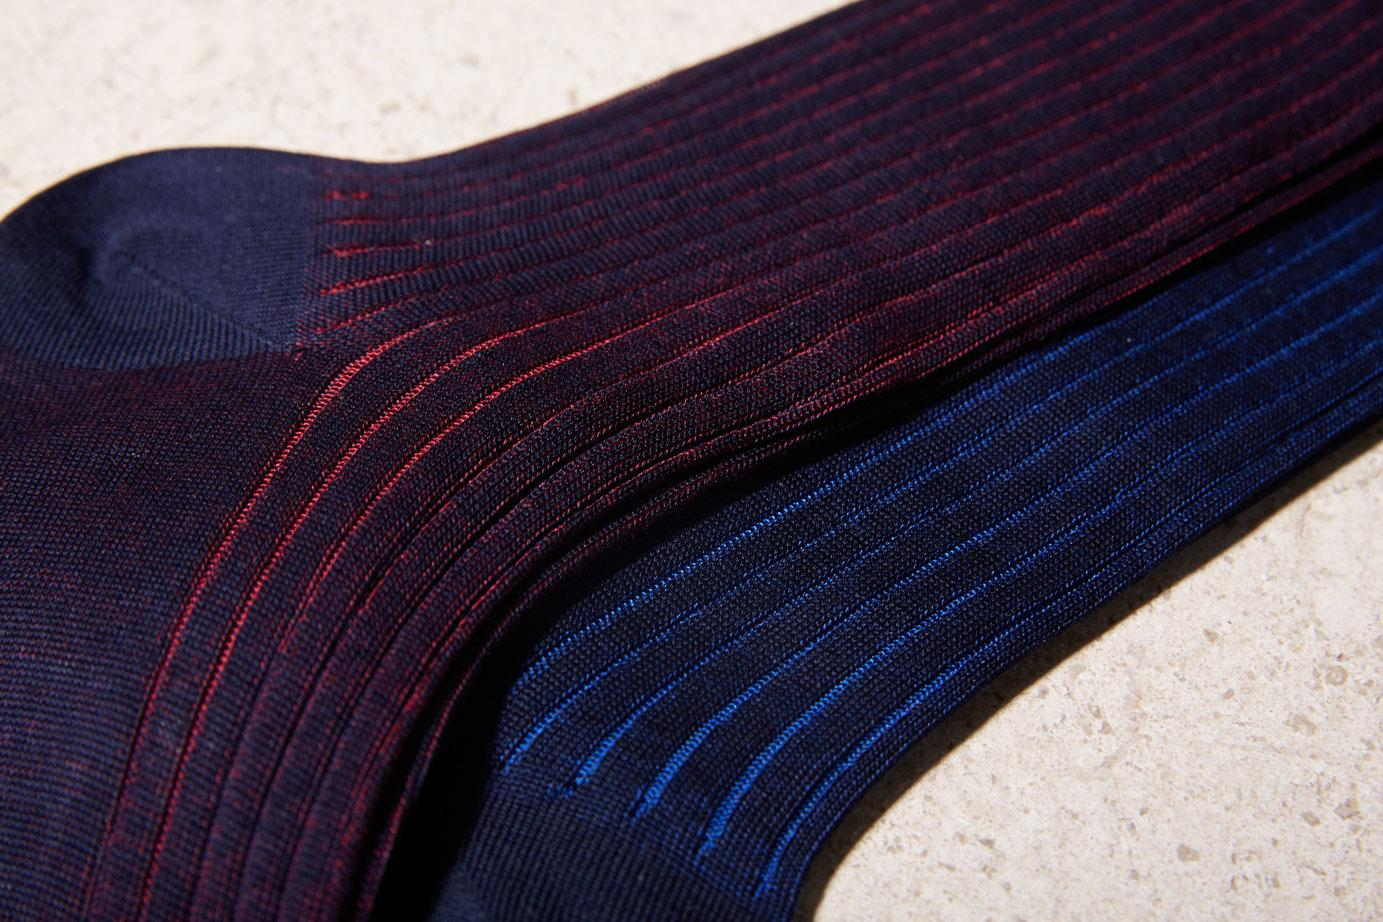 Bresciani cotton socks in navy blue and royal blue stripes. Large view.